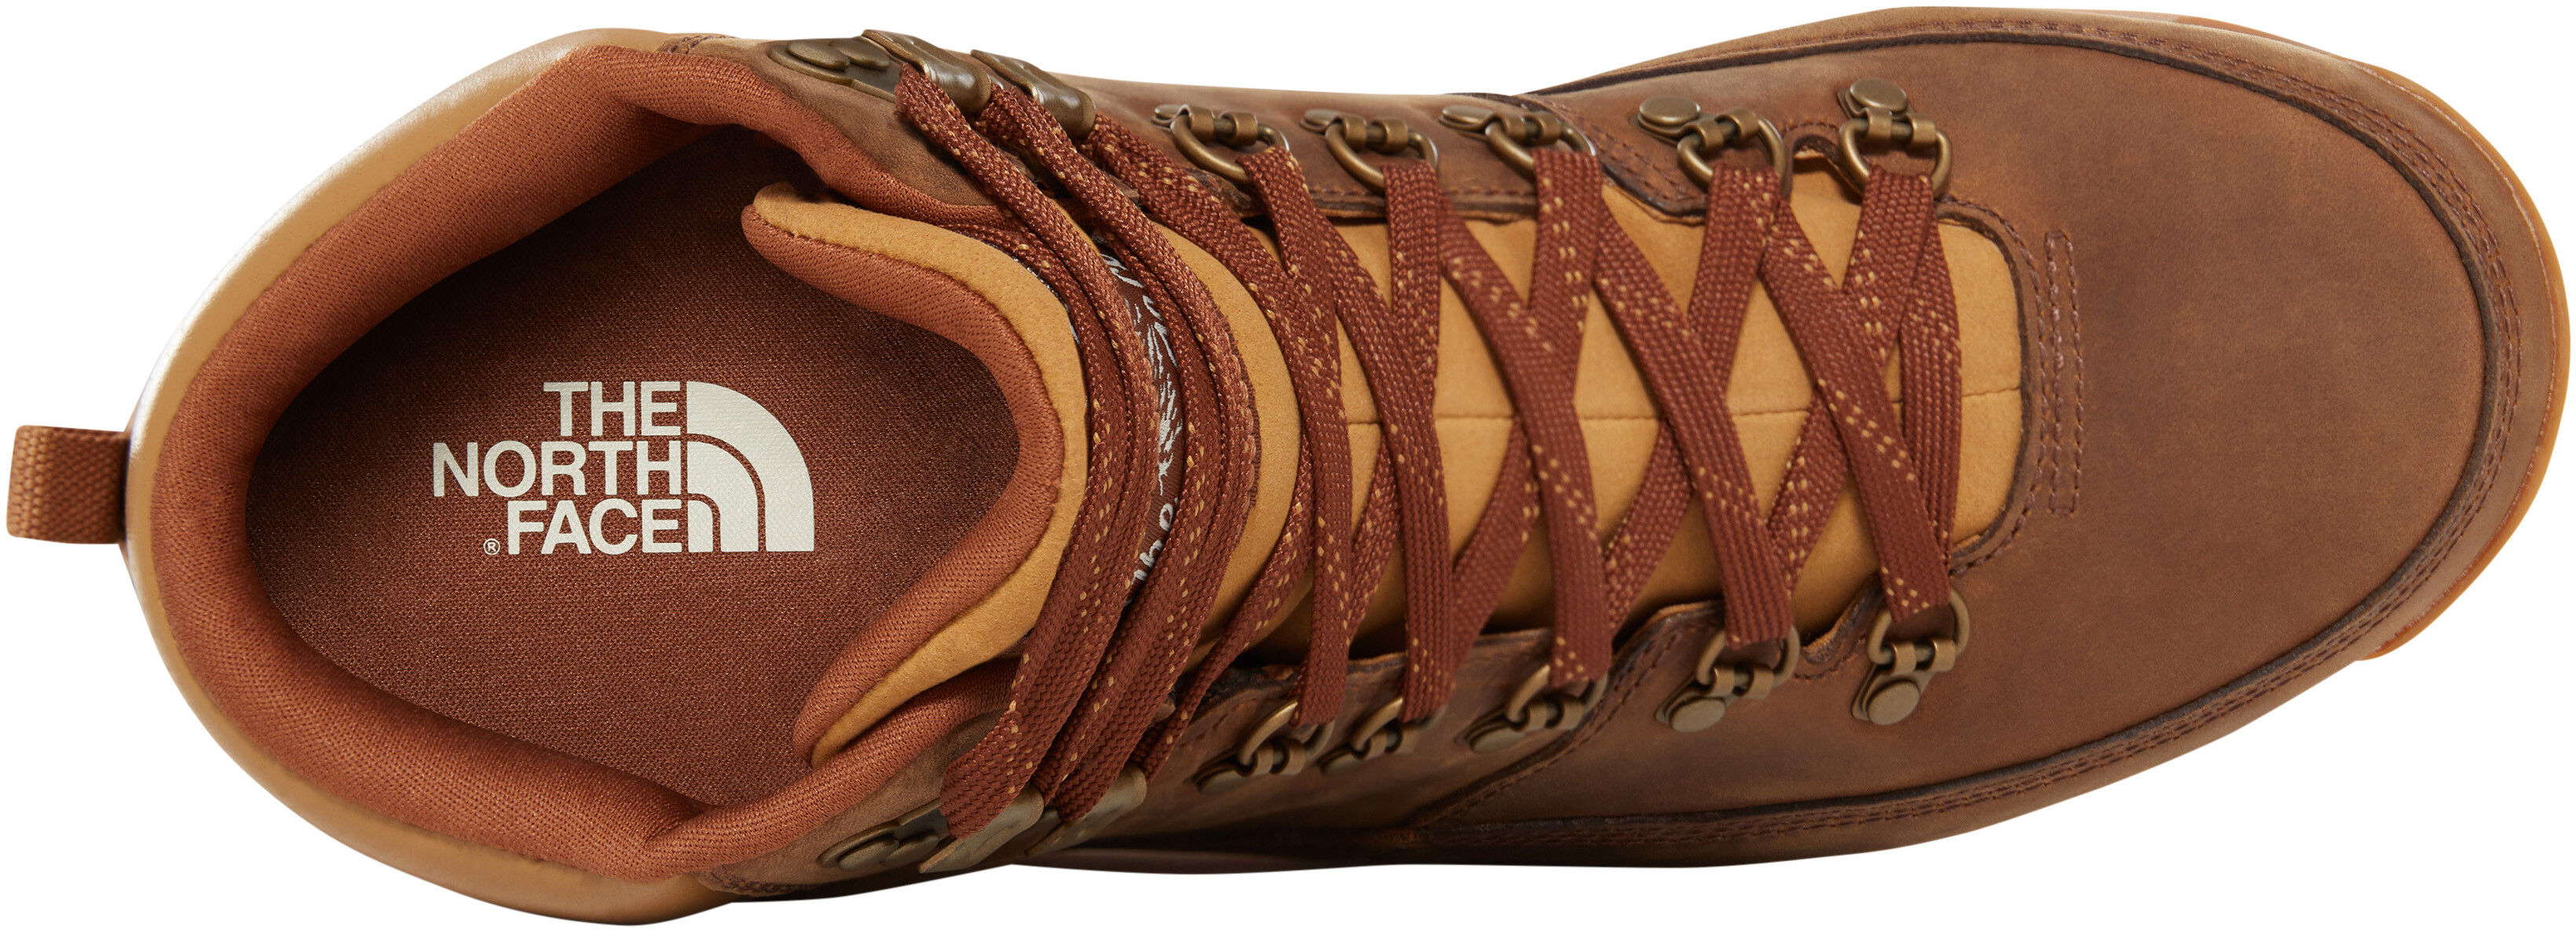 a08f1c832 The North Face Back-To-Berkeley Redux Leather Shoes Men dijon brown/tagumi  brown